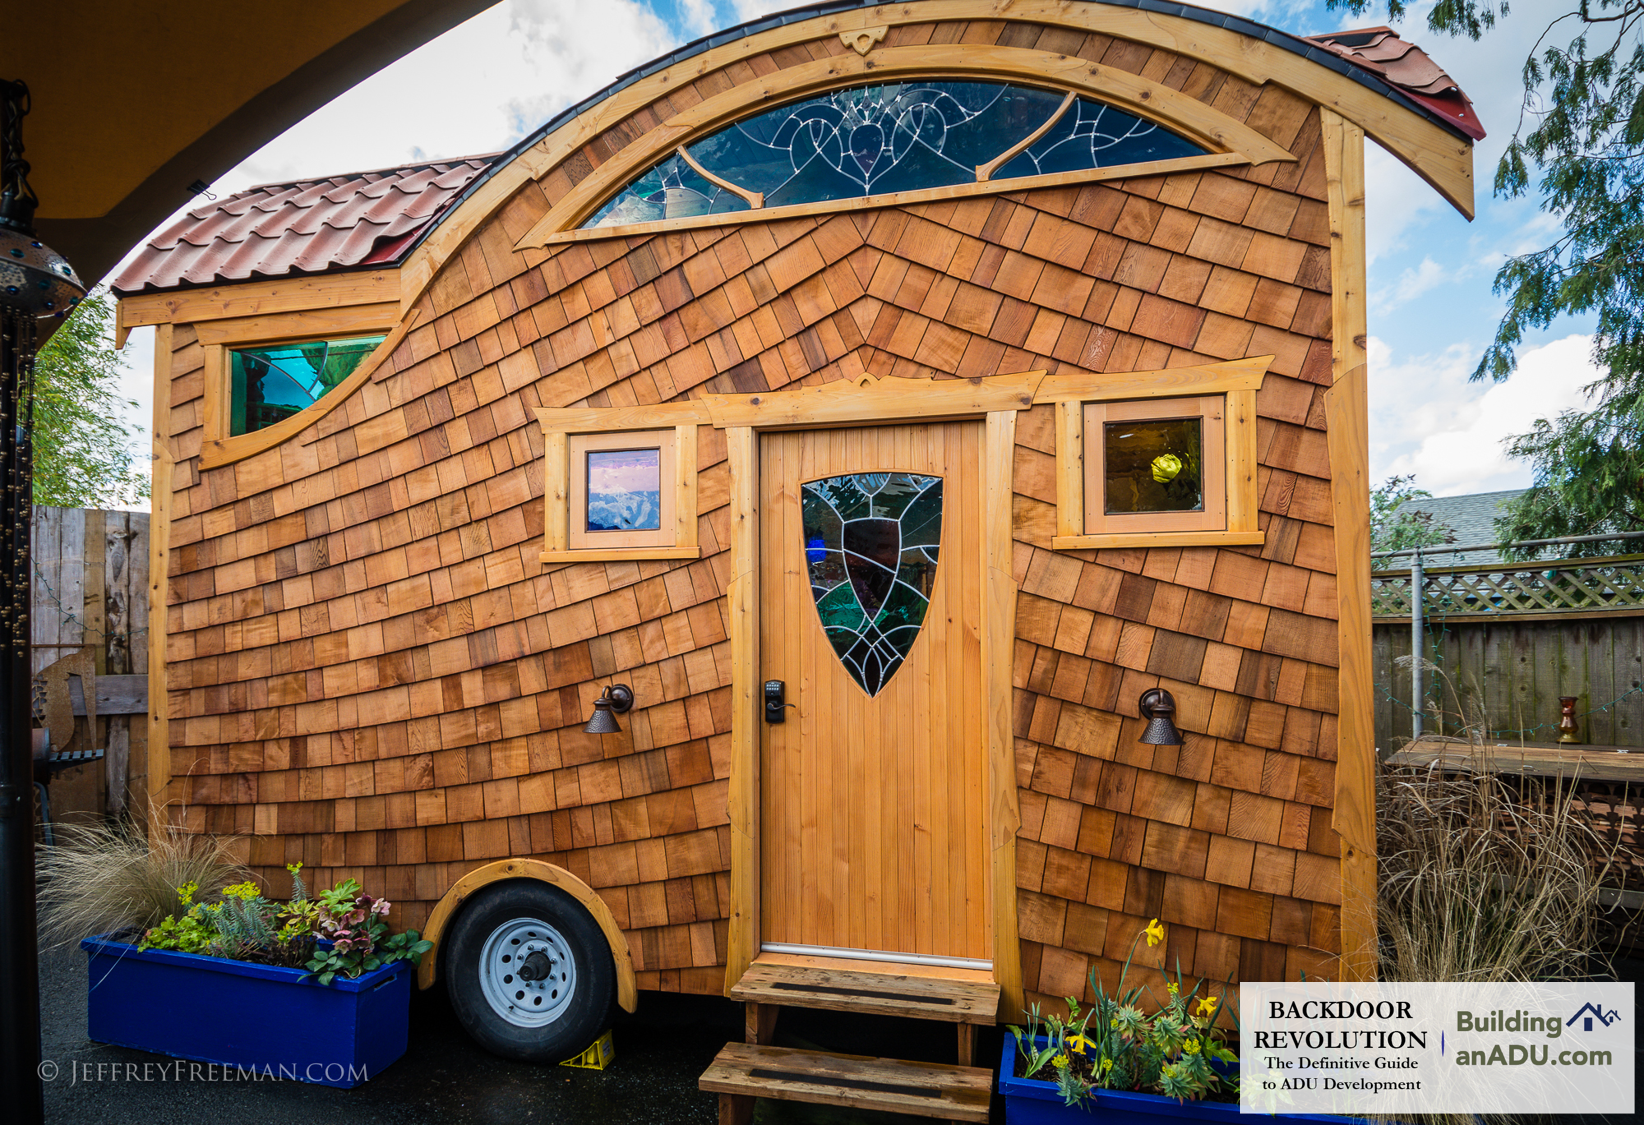 Pacifica , a tiny house on wheels, located at Caravan- The Tiny House Hotel. Tiny houses on wheels are not ADUs, but have helped propel interest in small housing options.